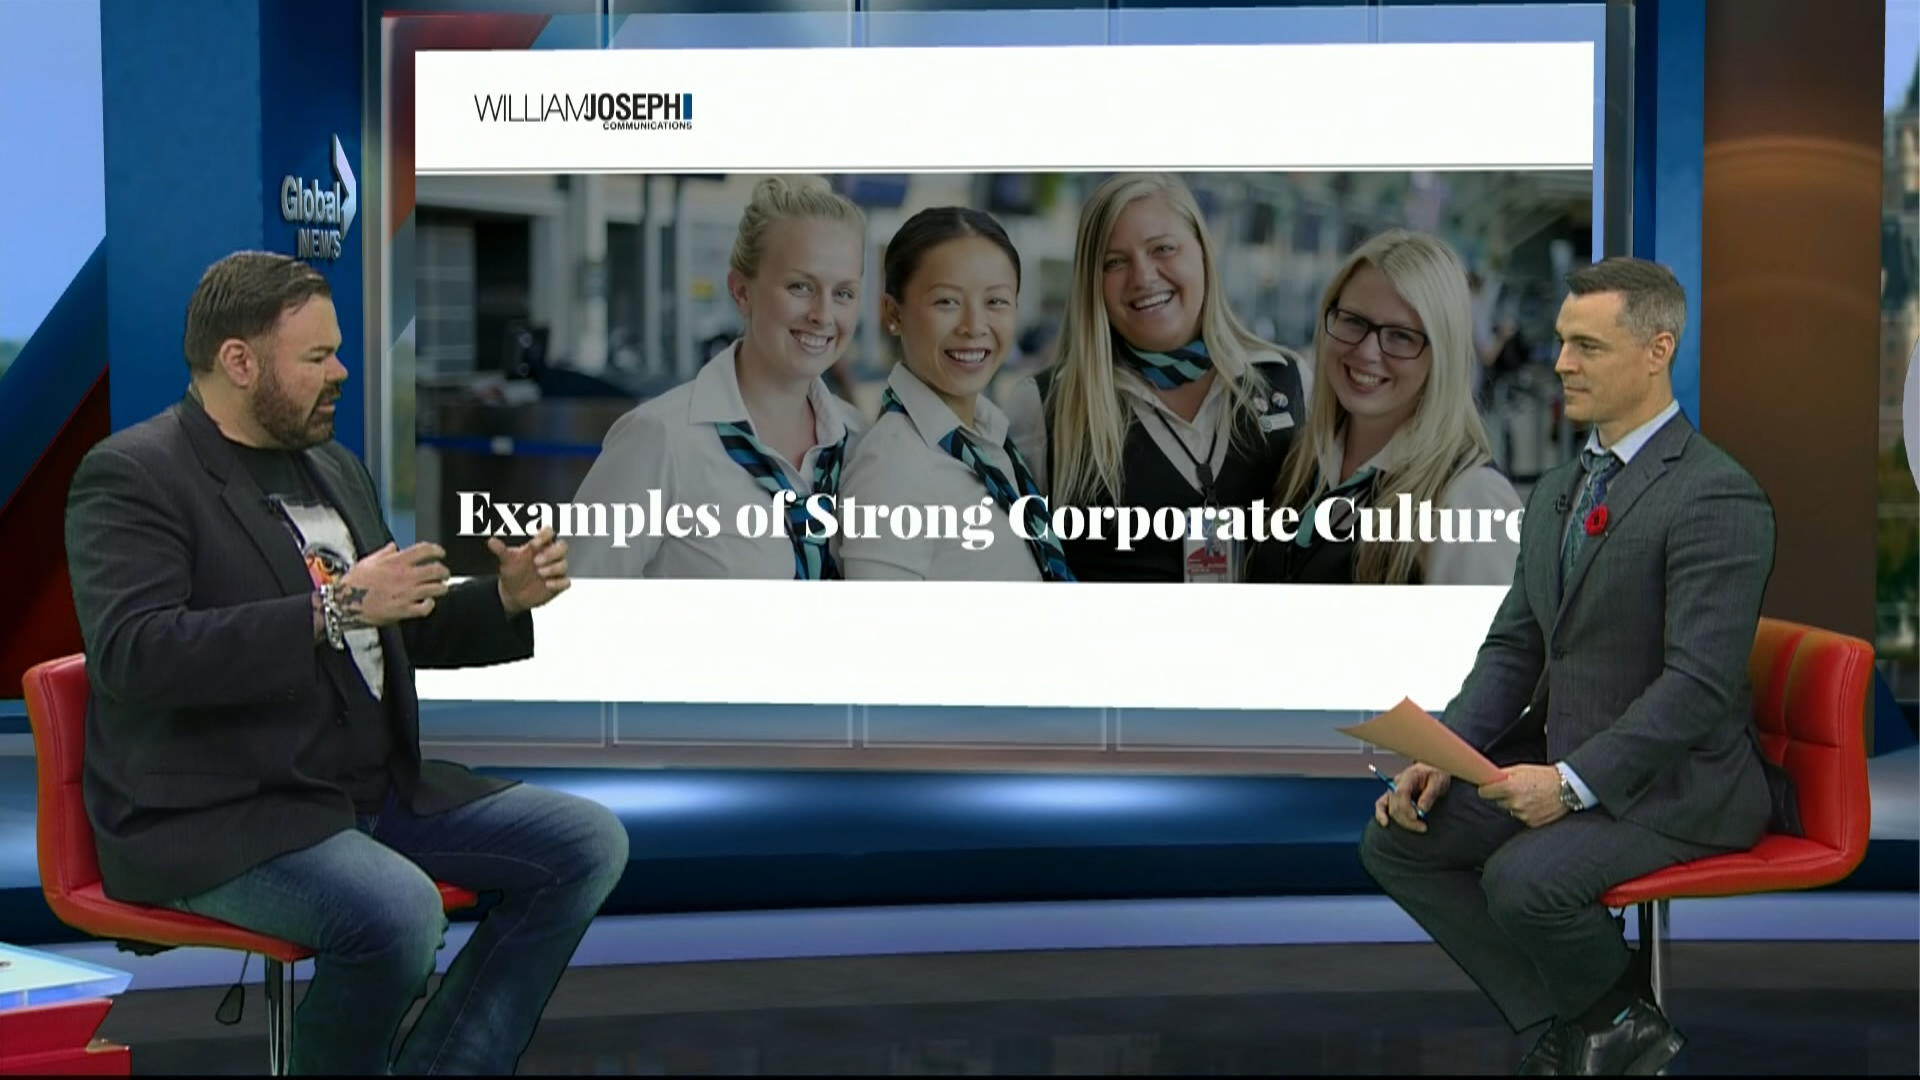 Promoting workplace culture through internal communications